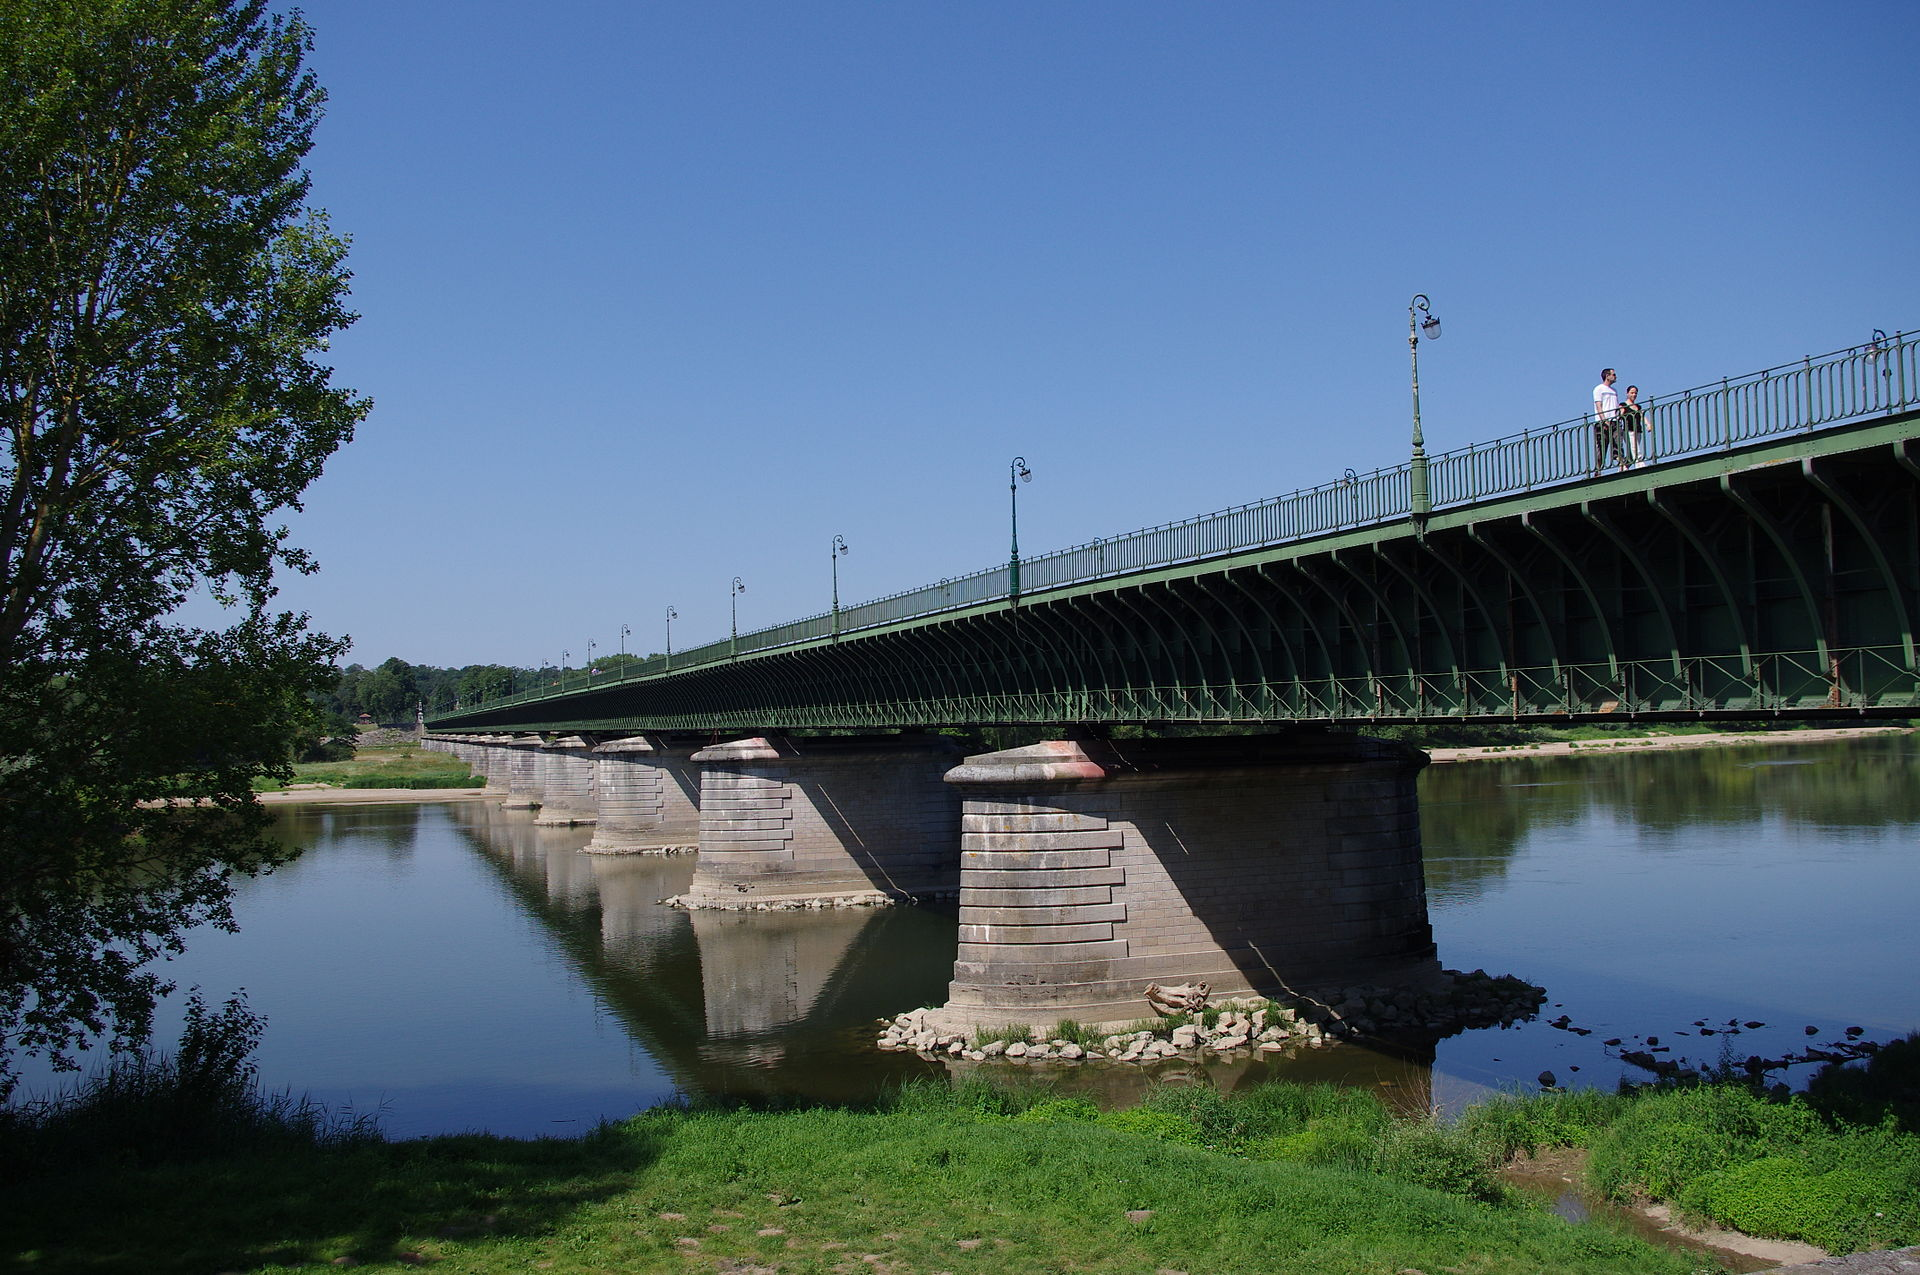 View of the bridge canal from the shore. It was the longest in the world until recently.